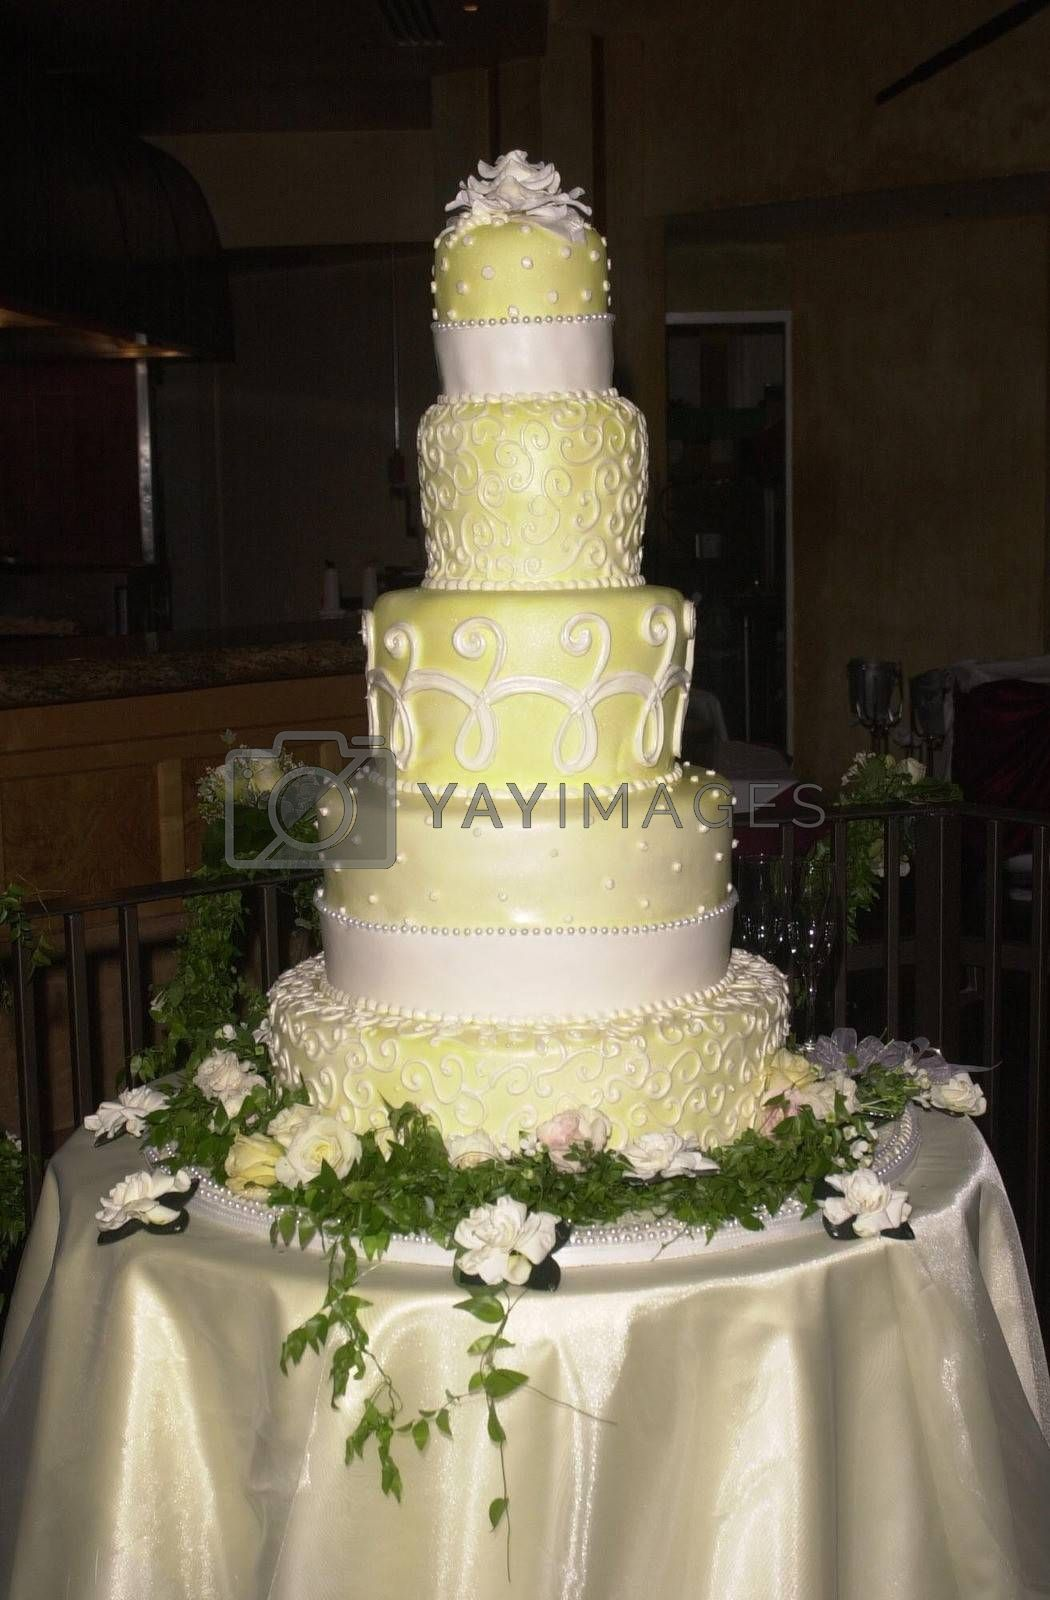 The Cake at the premiere of My 5 Wives in Santa Monica. 08-28-00